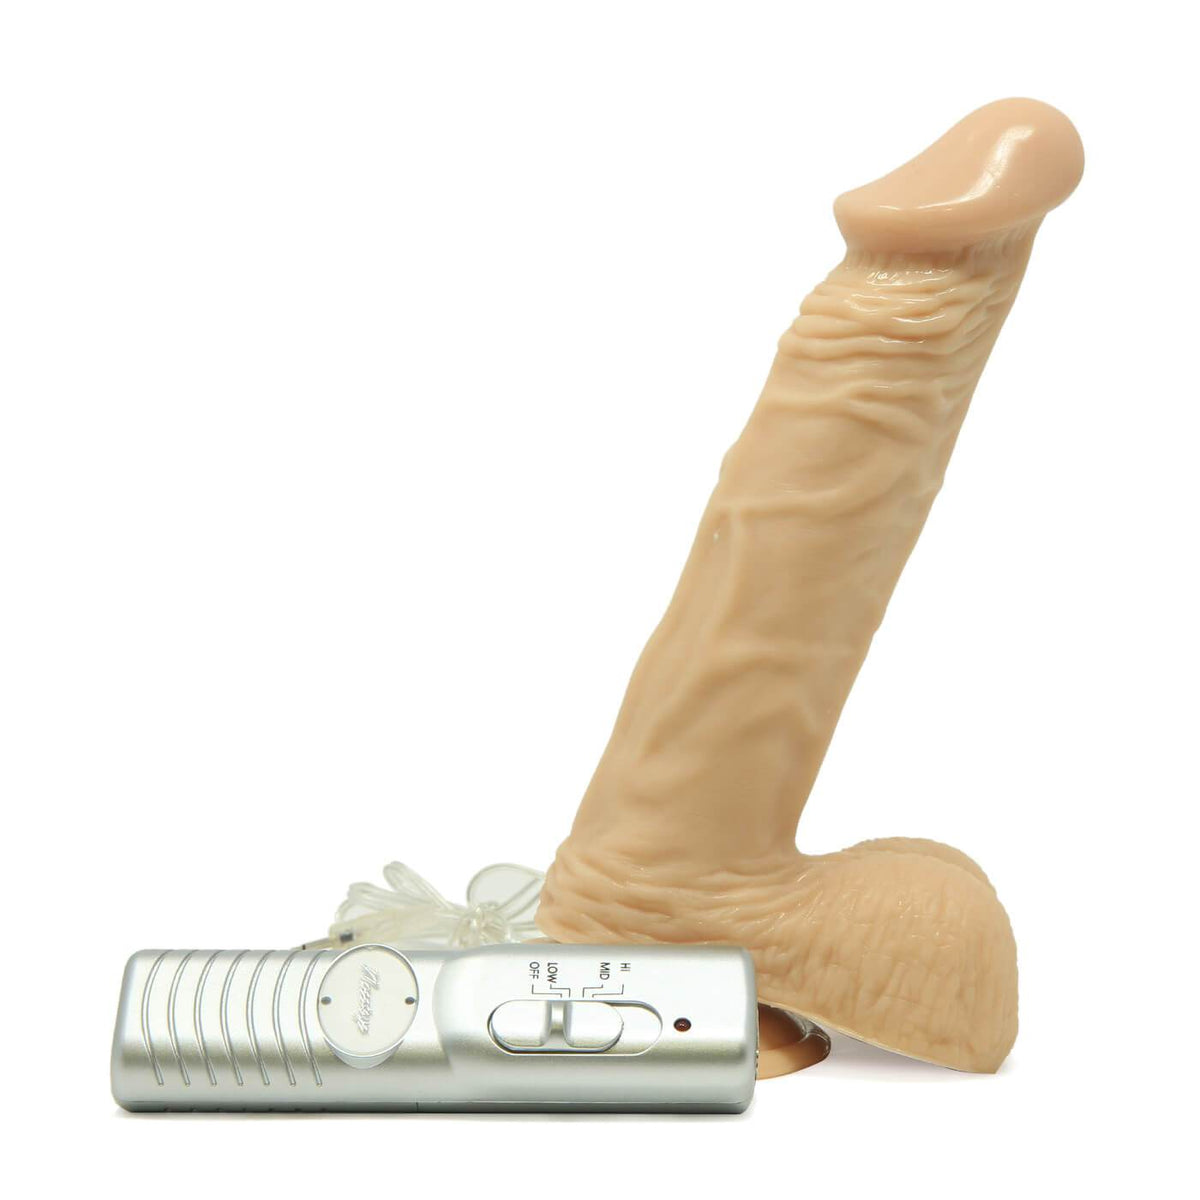 Huge 8 Inch Vibrating Dildo by Nasstoys